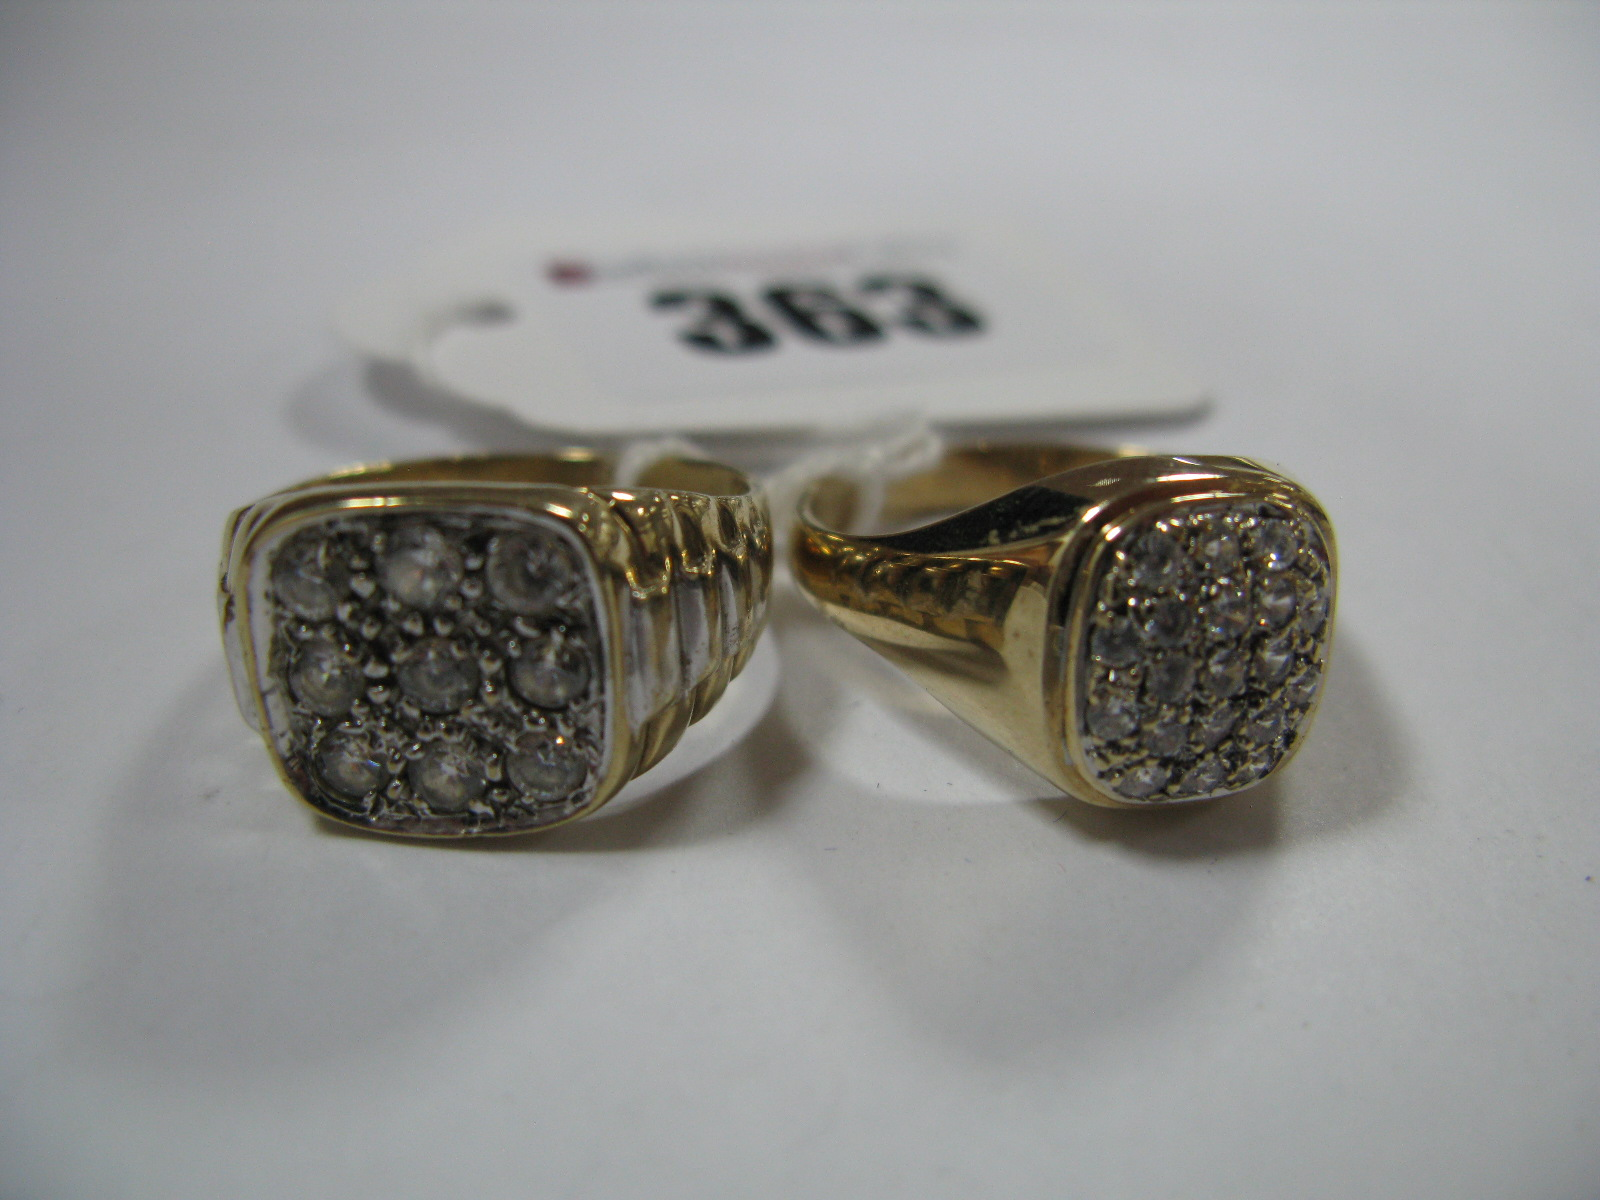 Lot 363 - A 9ct Gold Gent's Dress Ring, square inset to the centre, between textured watch bracelet style